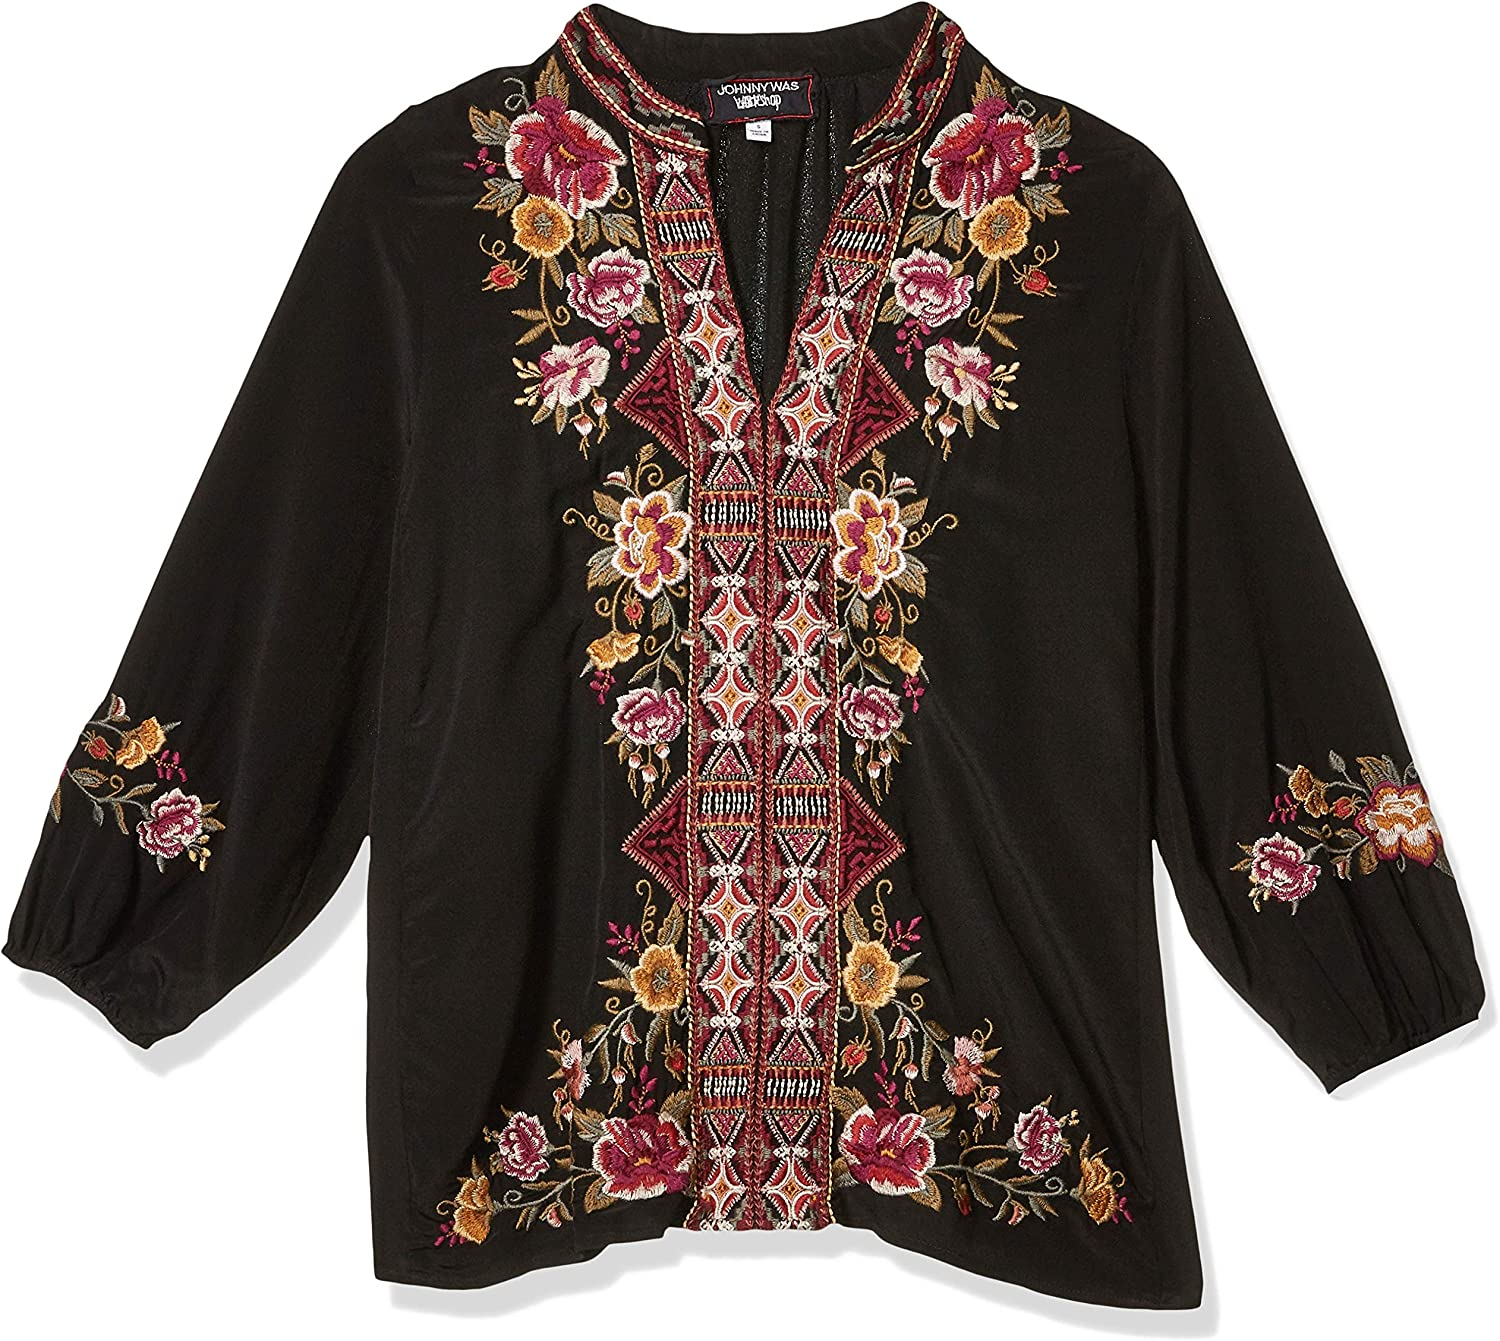 3J Workshop by Johnny Was Women's Silk Embroidered Peasant Blouse Black